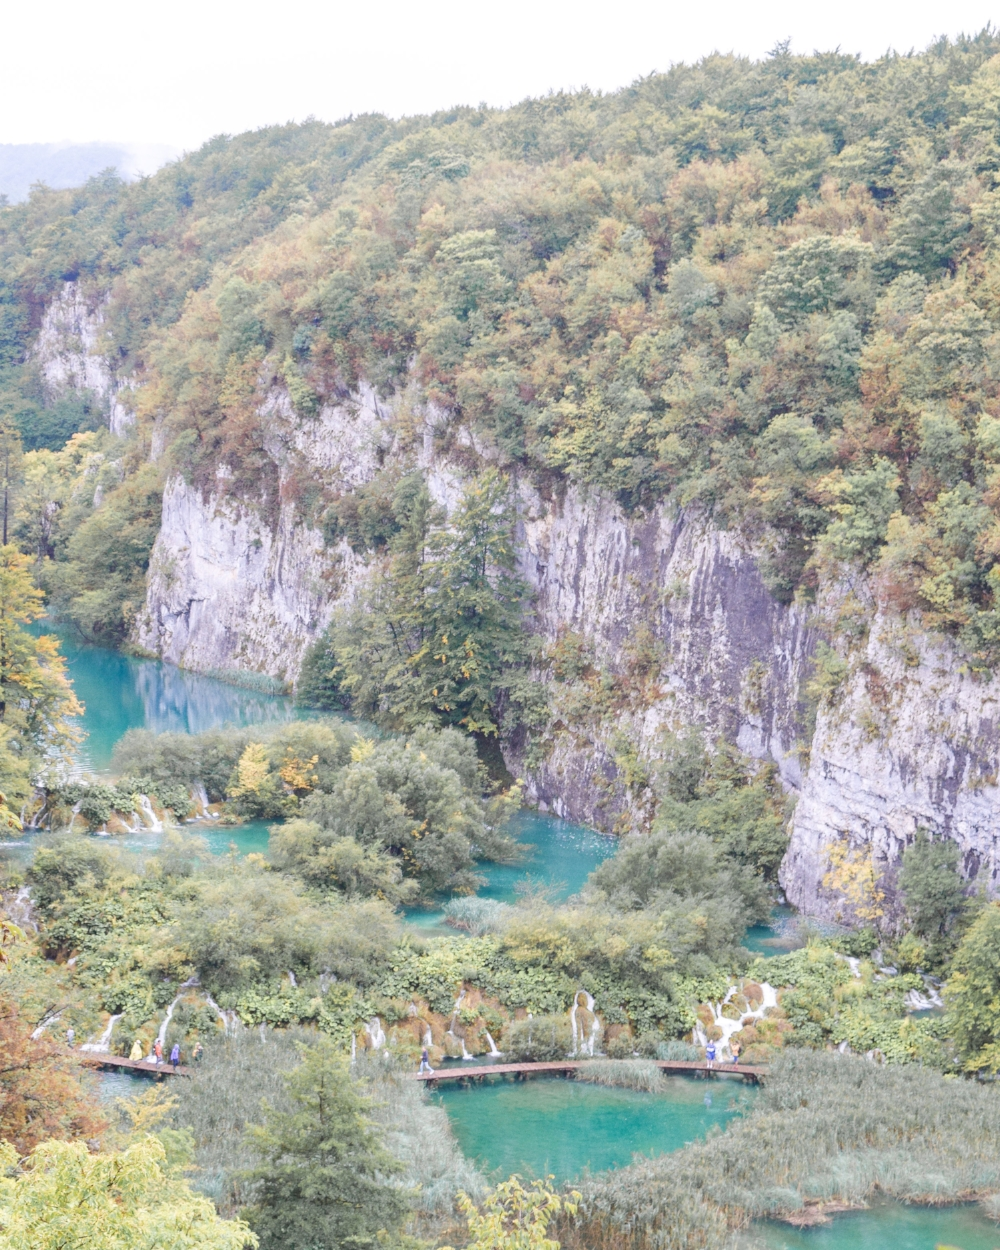 The gorgeous teal Plitvice Lakes.